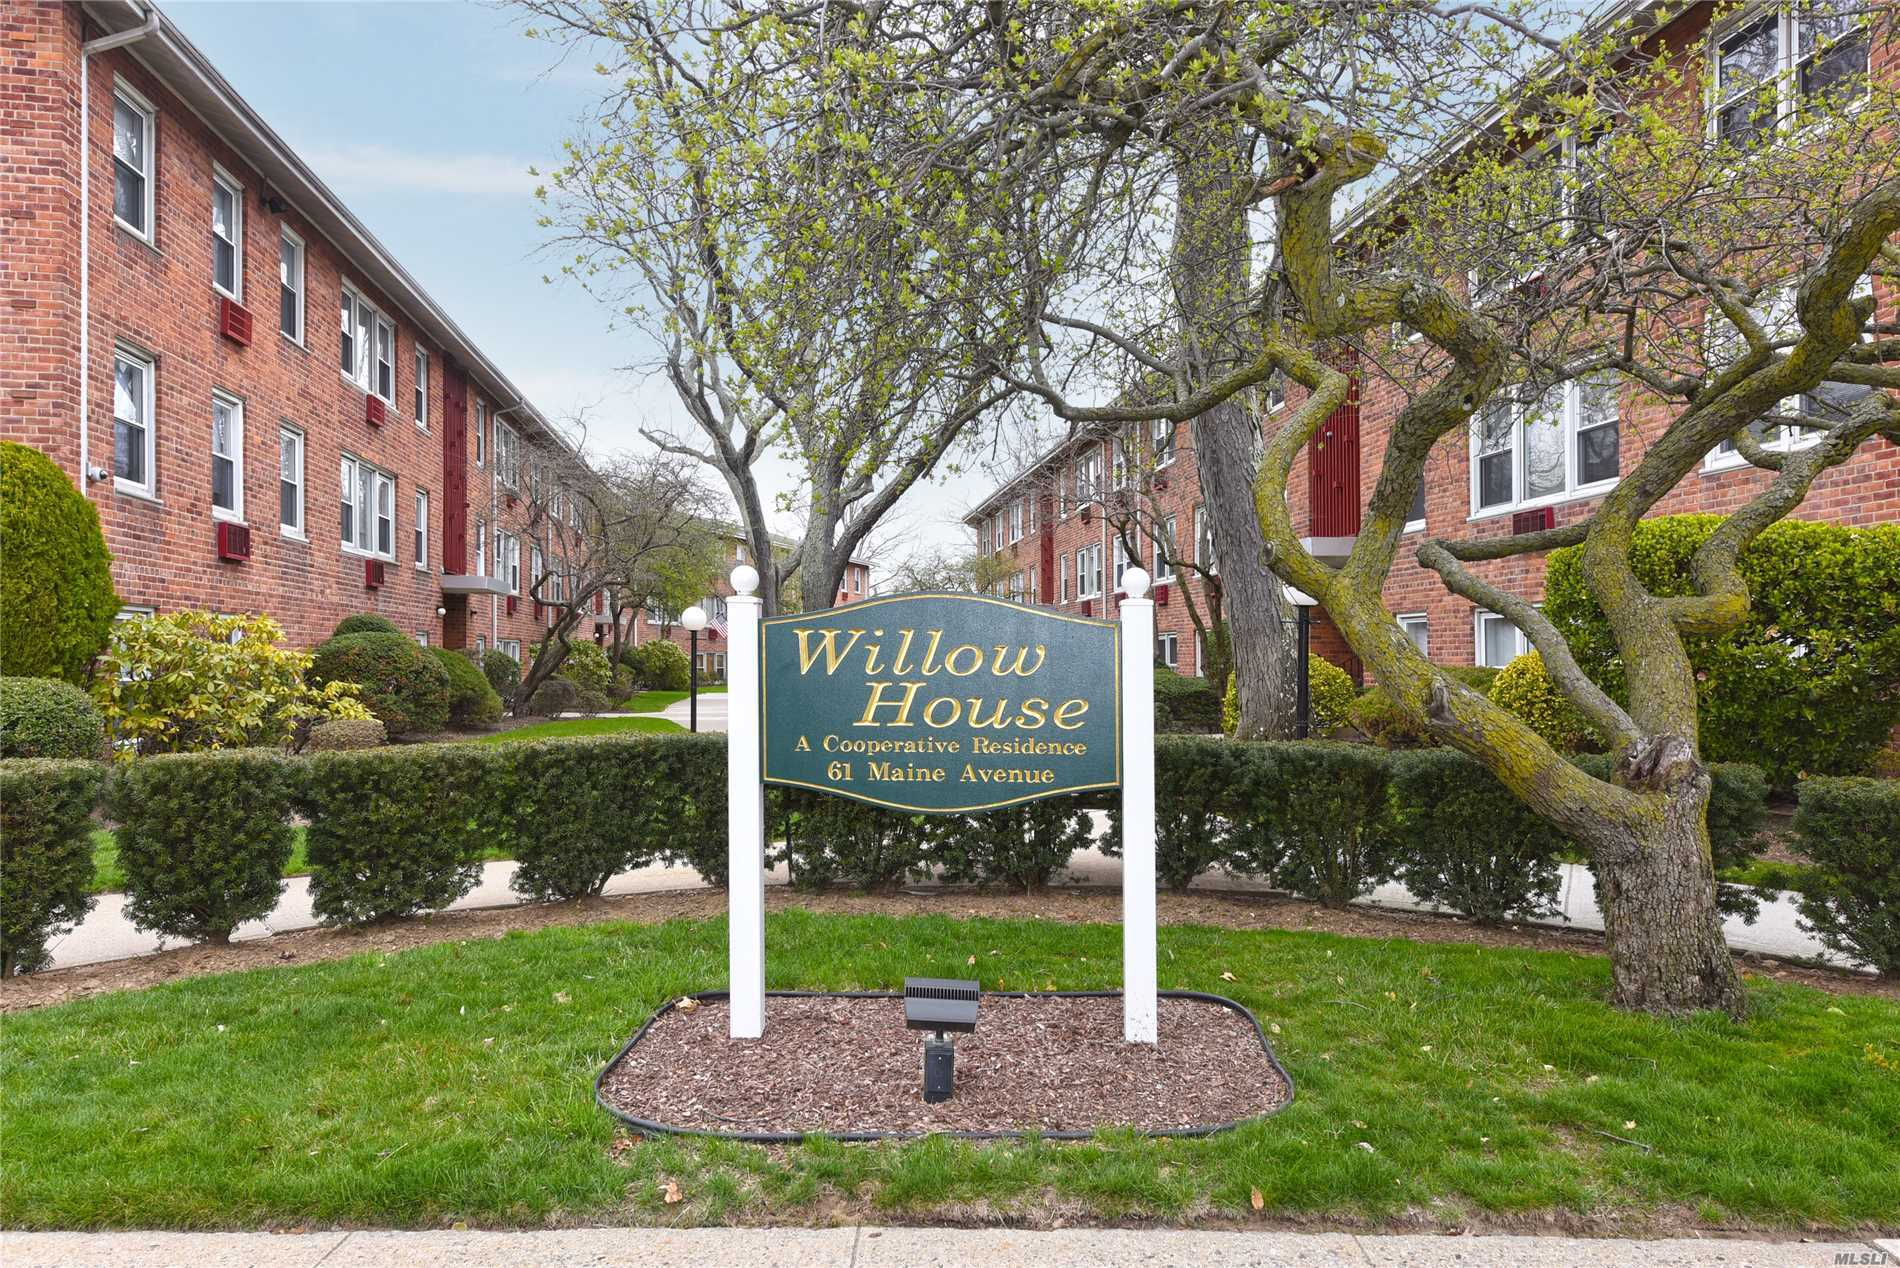 Property for sale at 61 Maine Ave, Rockville Centre,  NY 11570